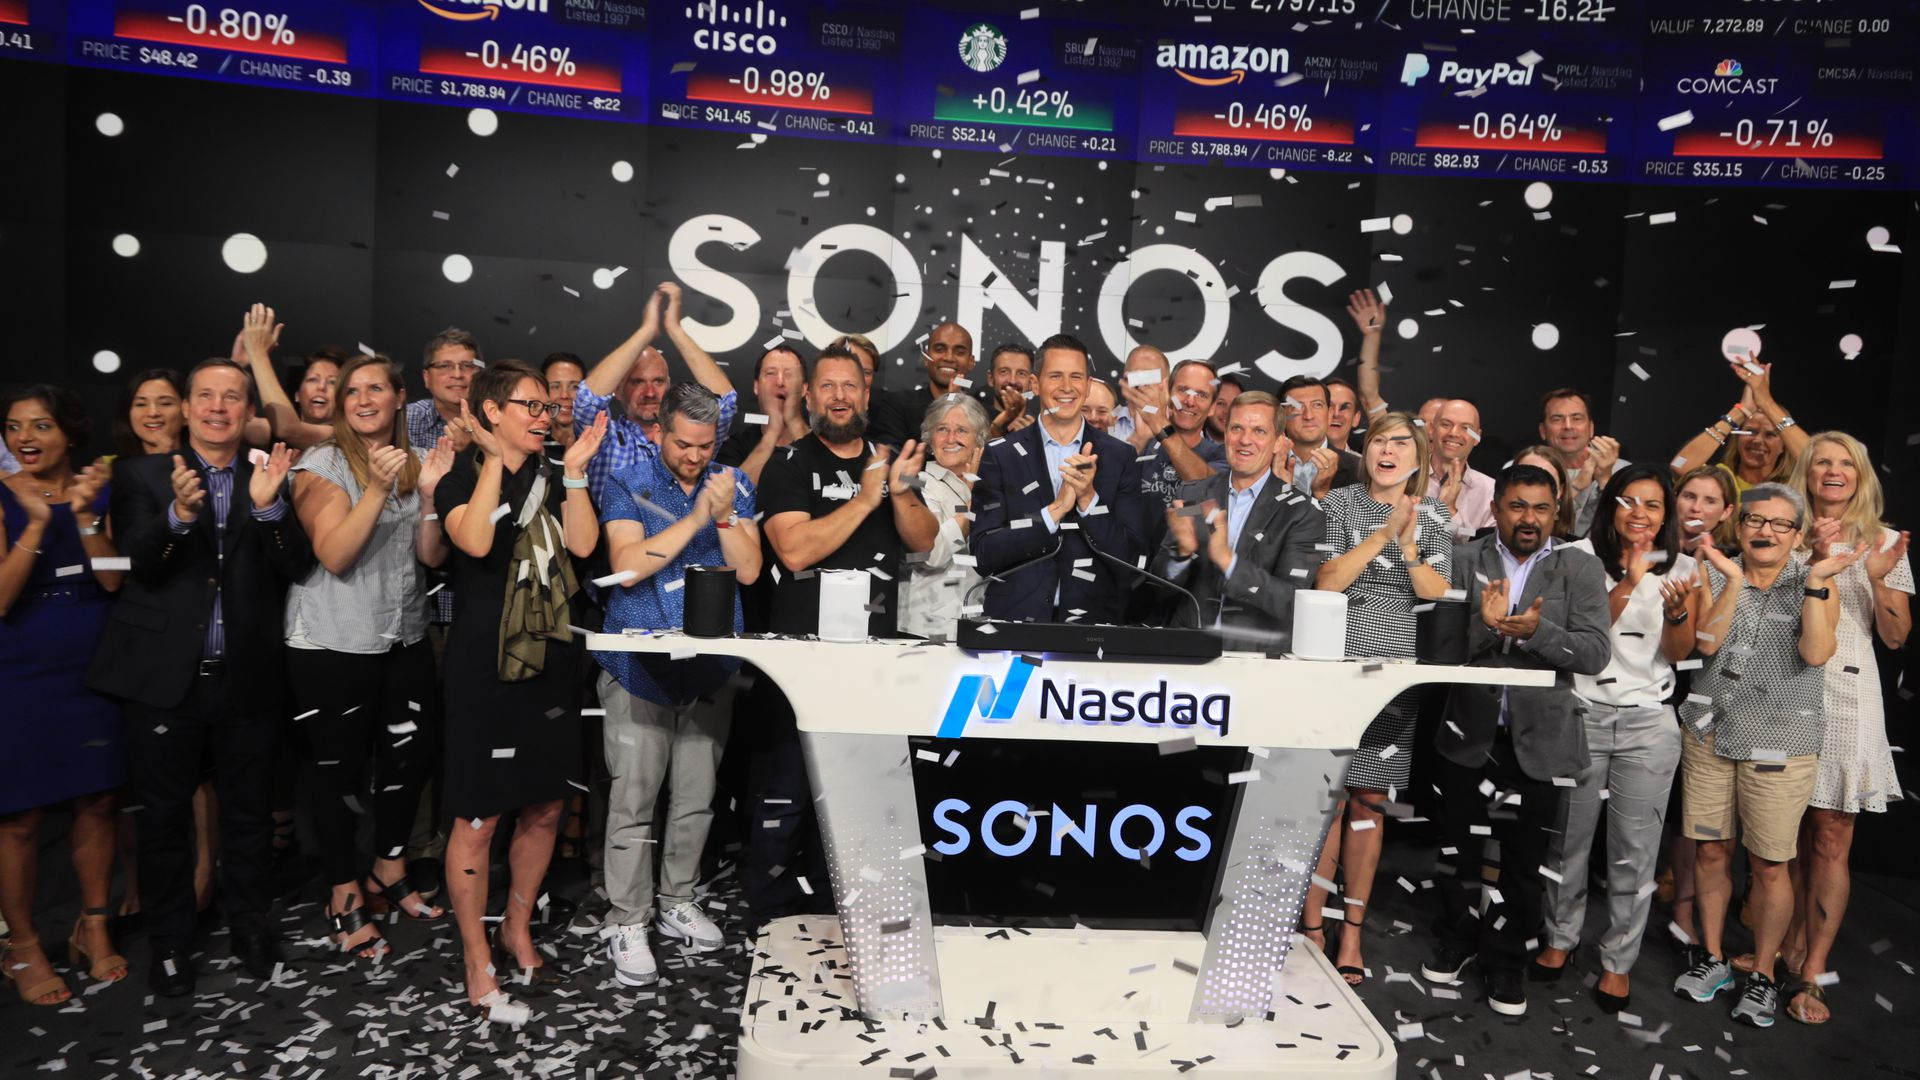 Sonos employees celebrate the company's IPO